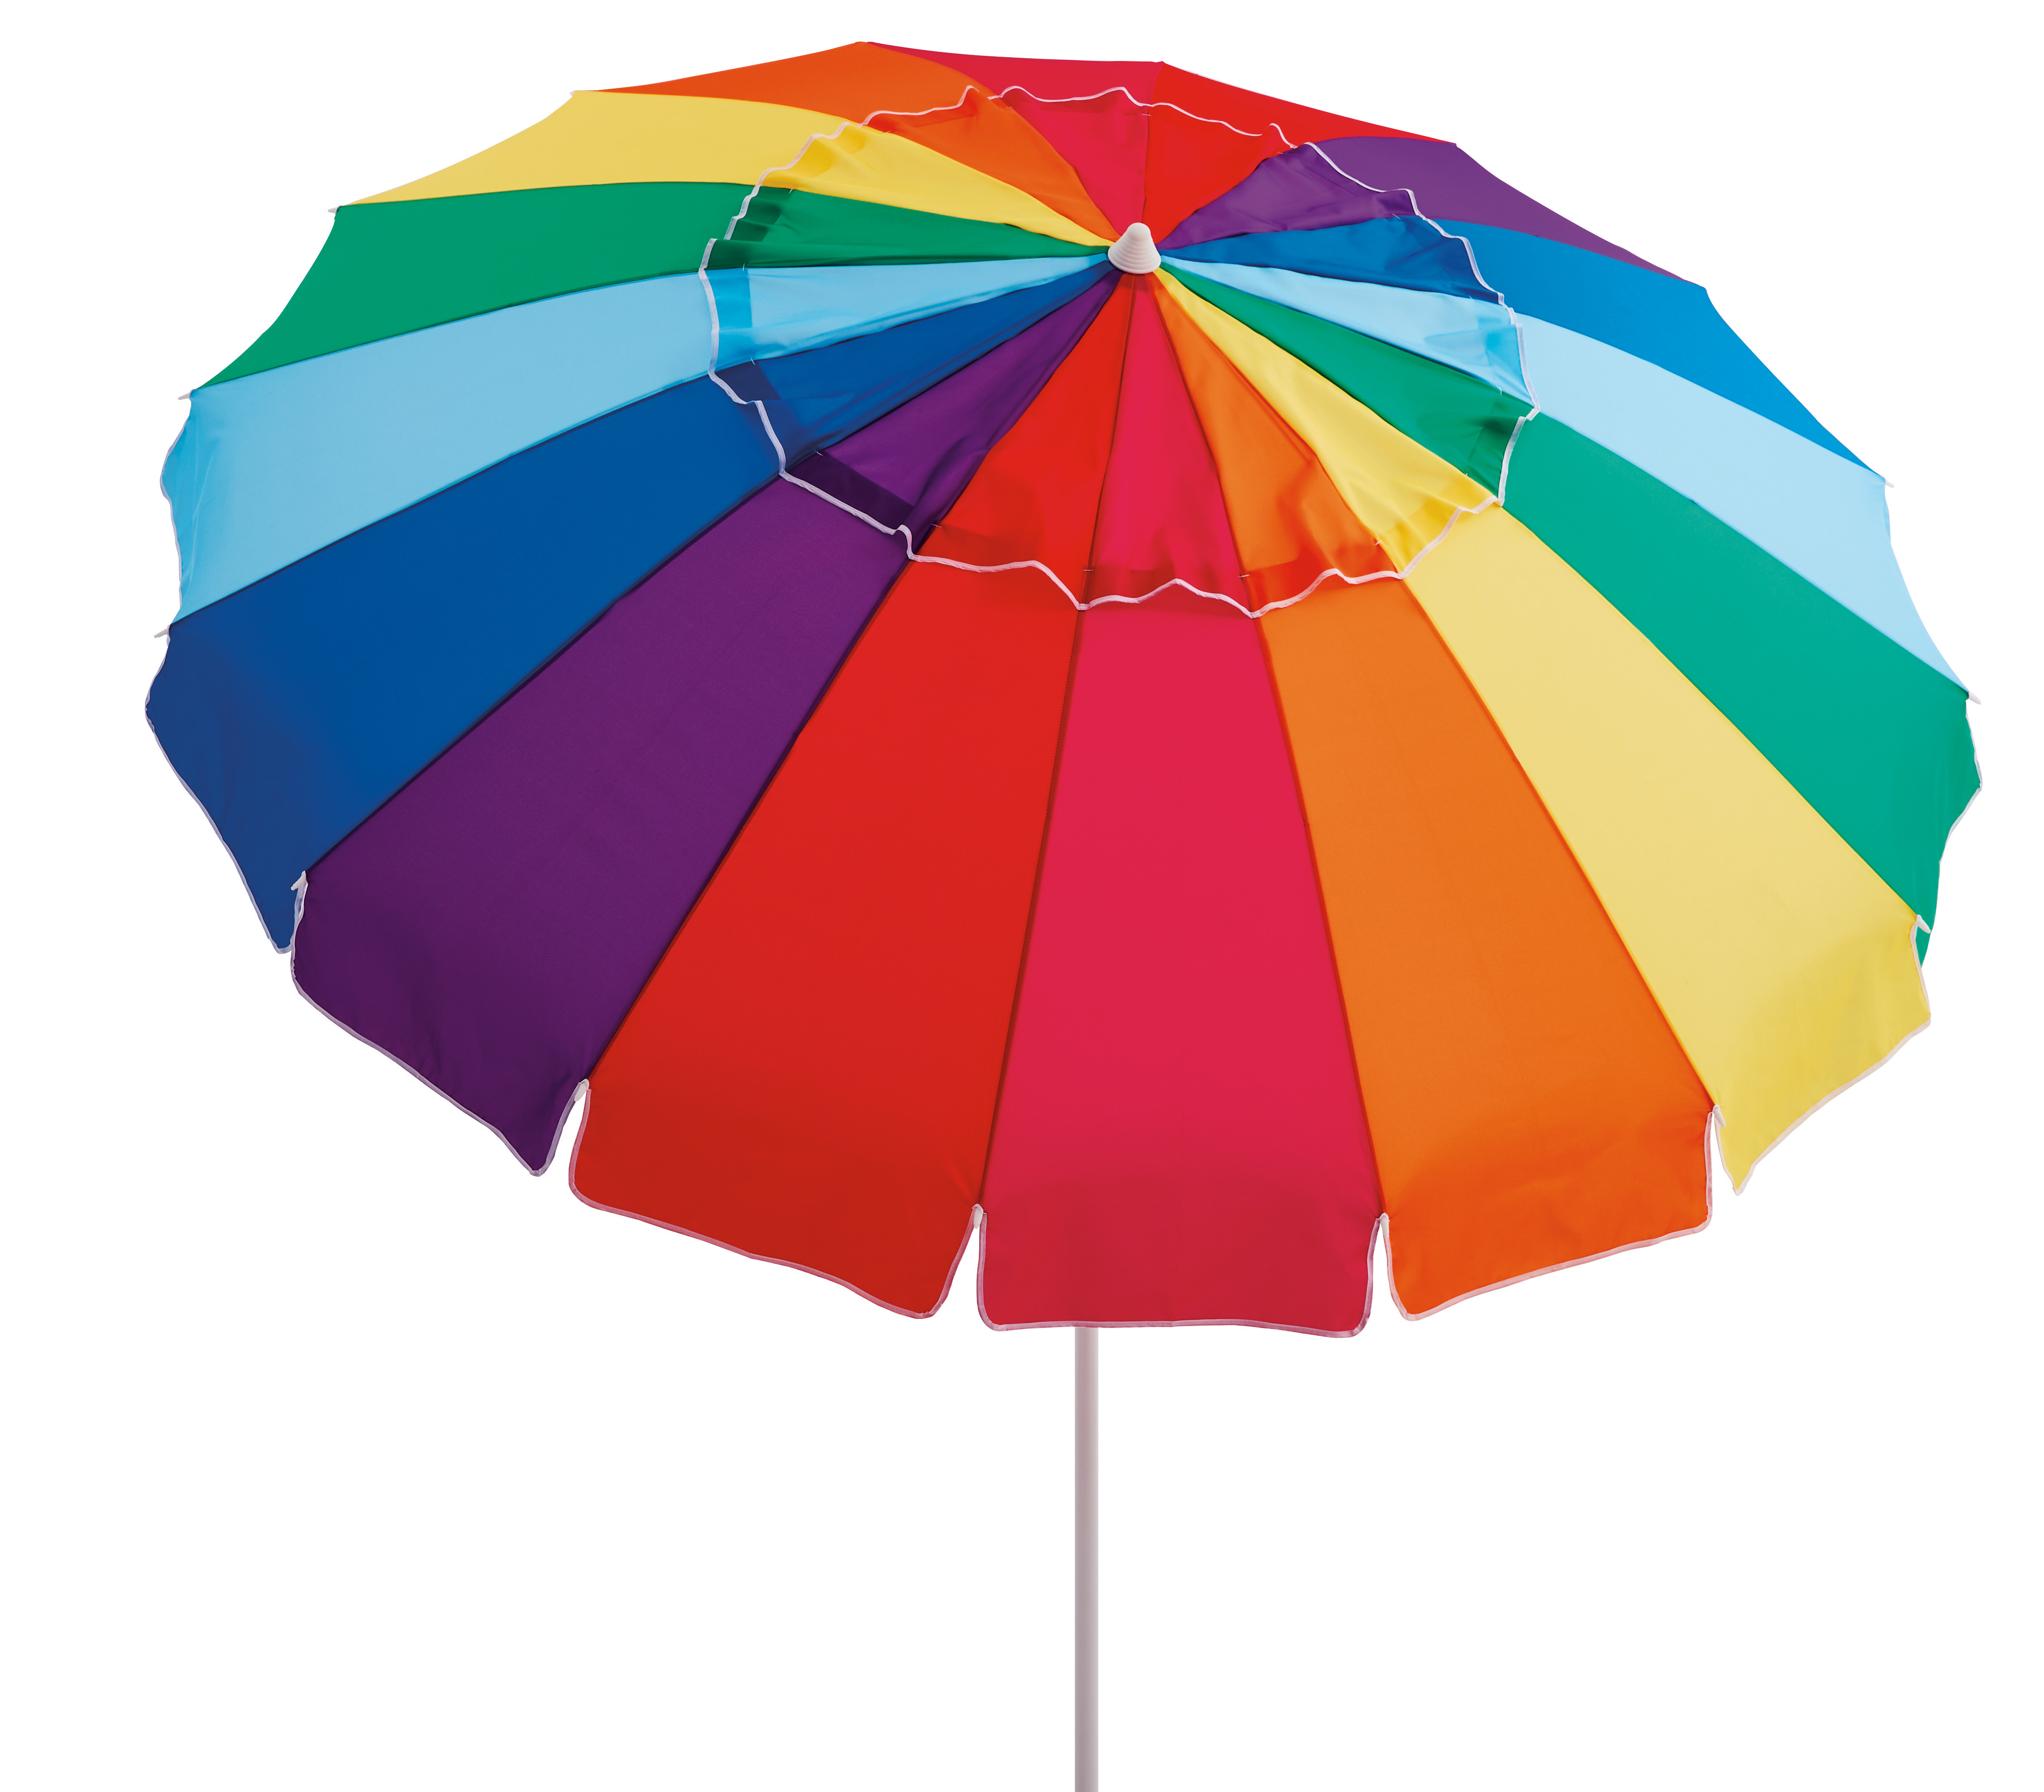 Mainstays 8 Ft. Vented Tilt Rainbow Beach Umbrella Within Well Known Tilt Beach Umbrellas (Gallery 3 of 20)